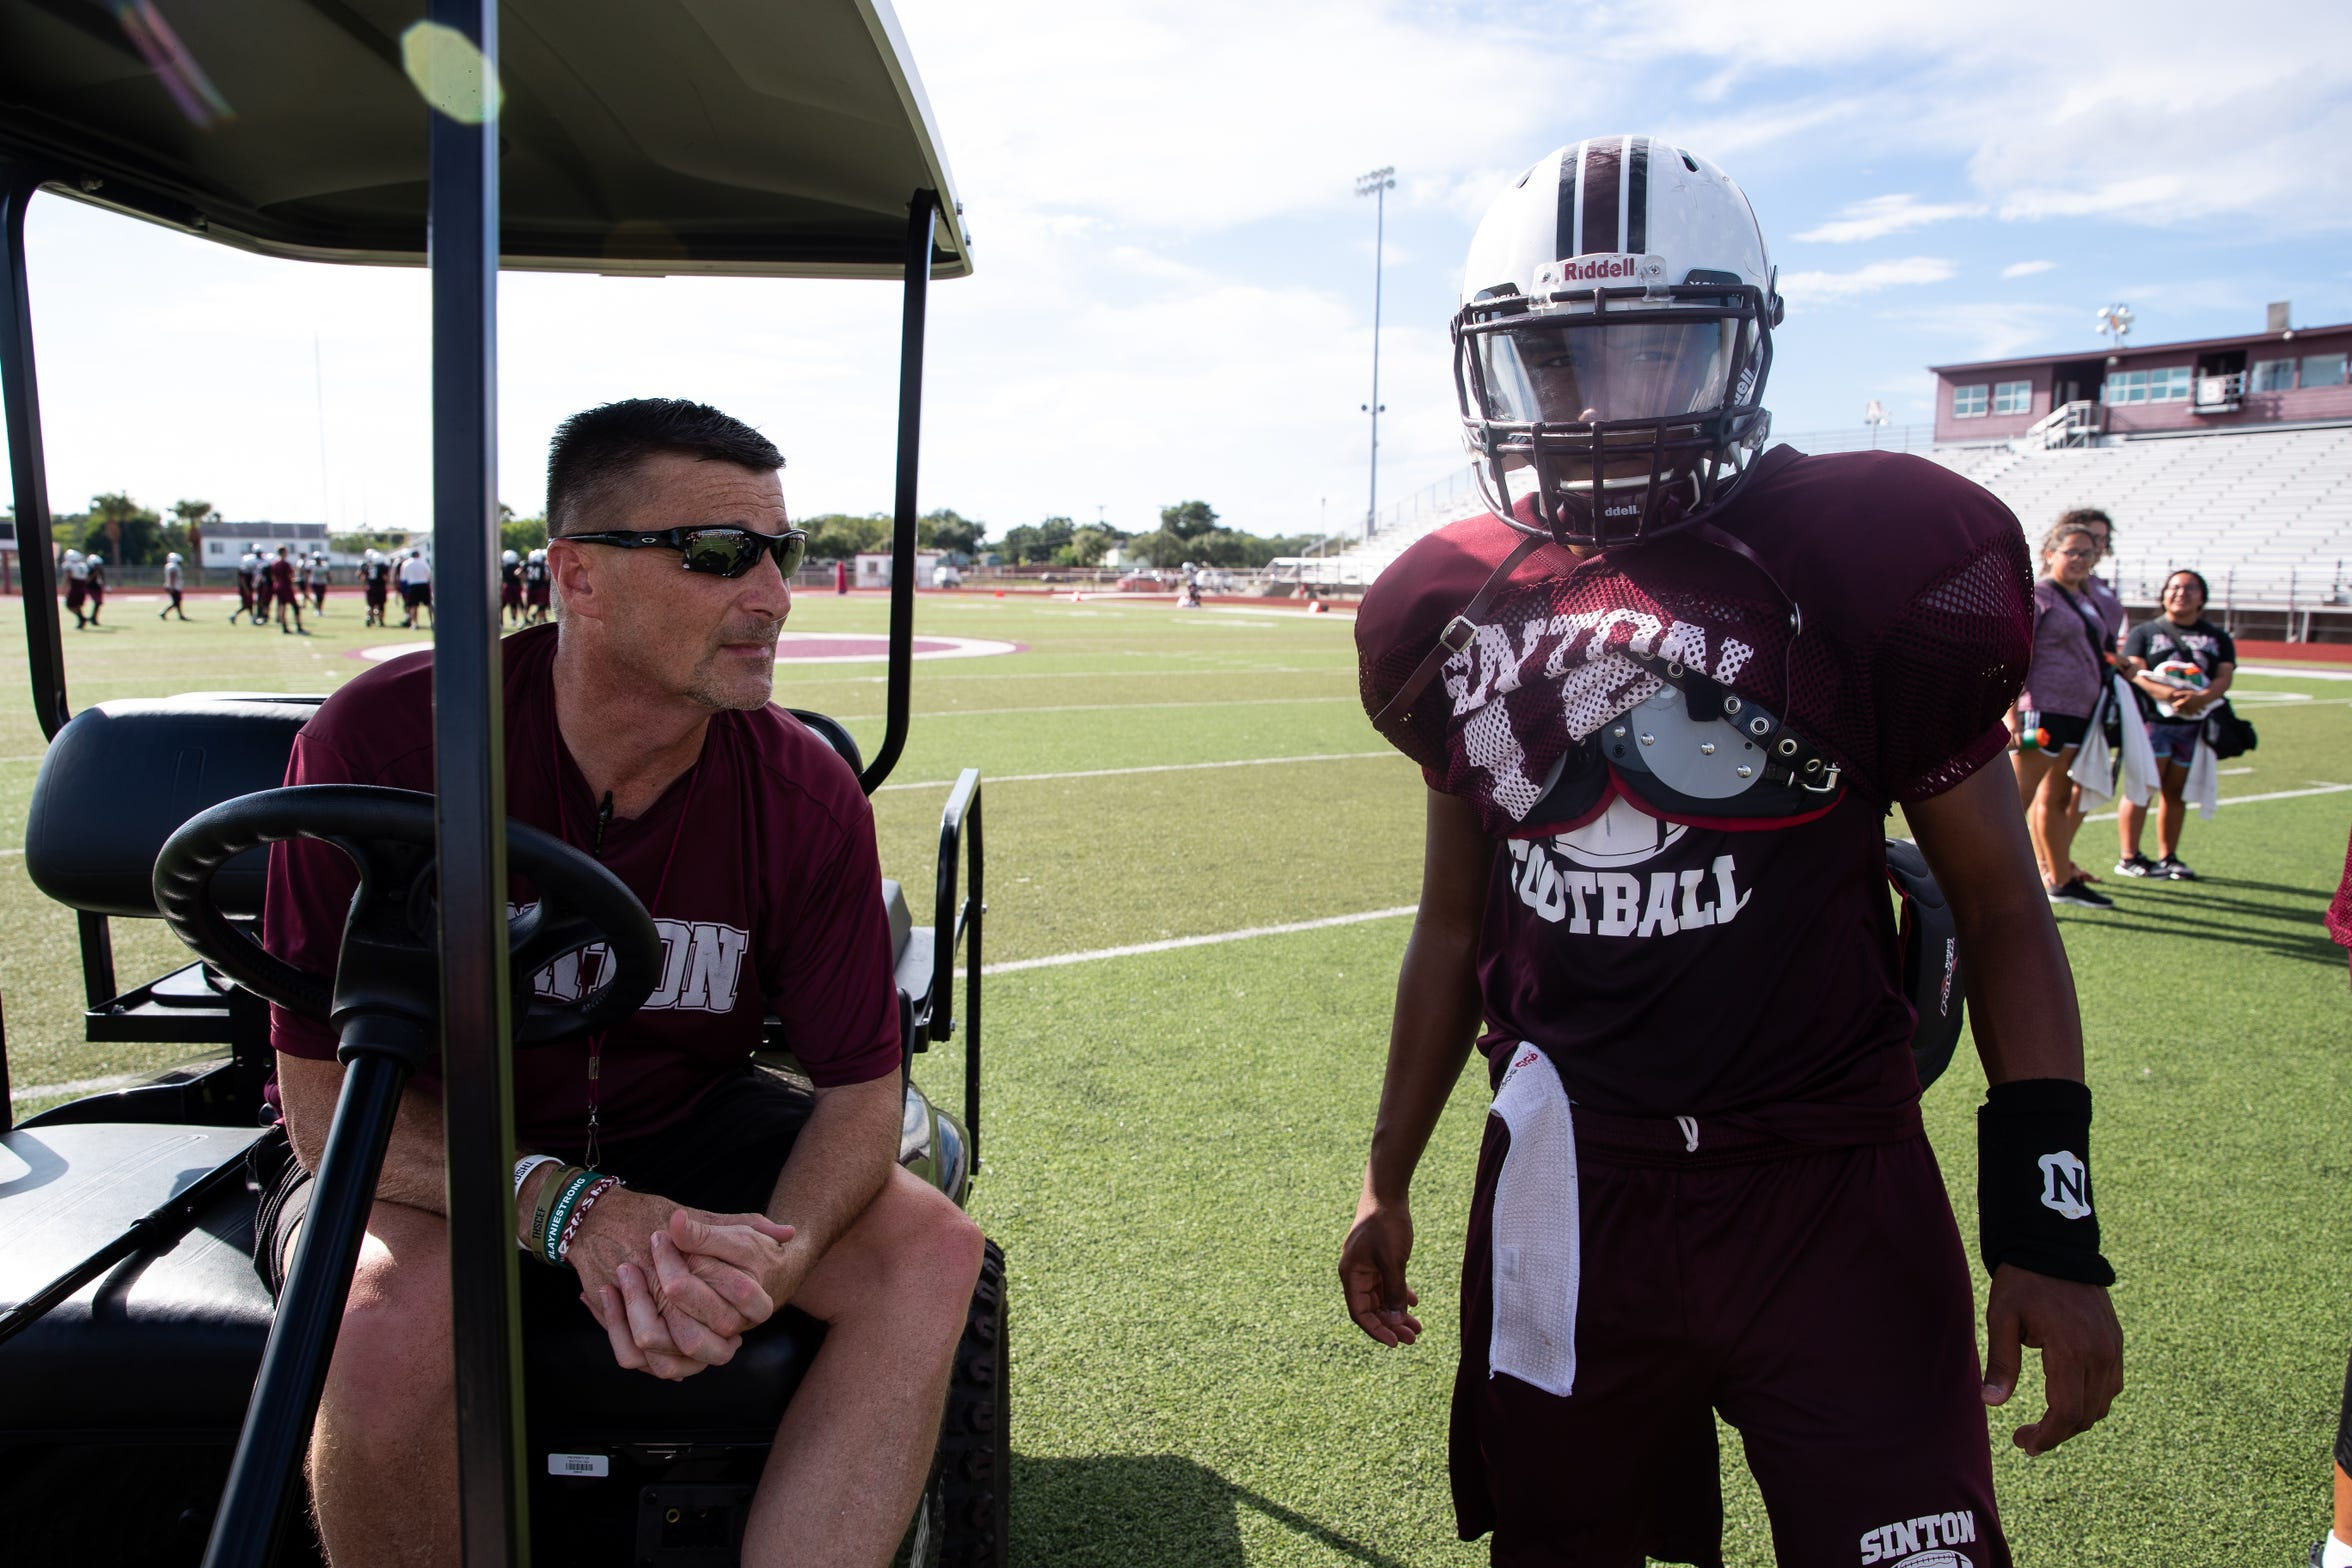 Tom Allen head coach of the Sinton football team talks to one of his players as he sits in his cart during practice at Sinton High School on Tuesday, Sept. 18, 2018. Allen is suffering from a rare neurological disease that has him in a cart during games and practices